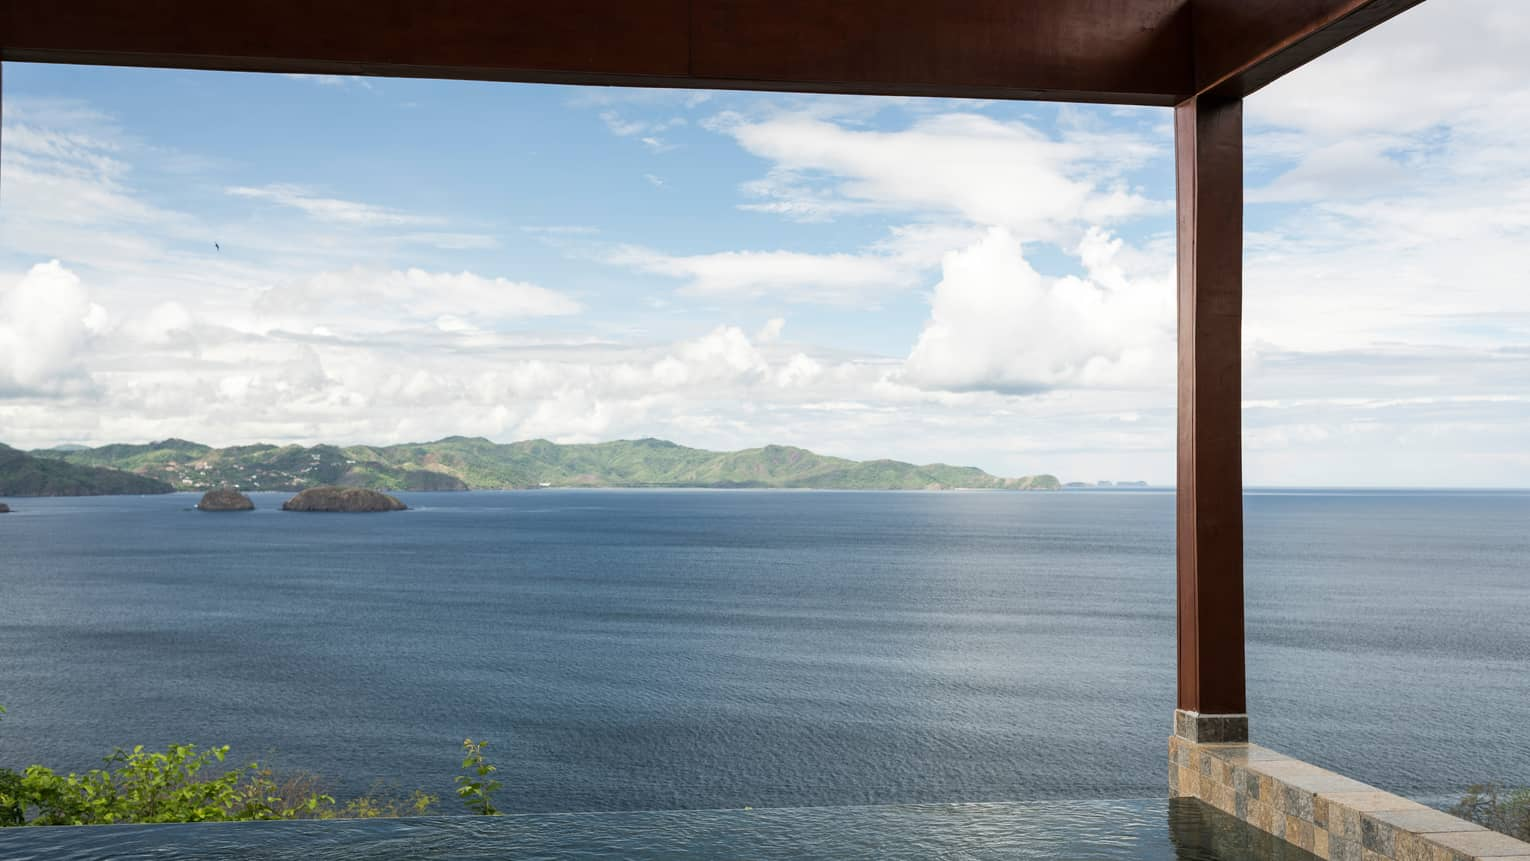 Canopy Plunge Pool Suite with sweeping views of ocean, mountain from edge of private infinity swimming pool